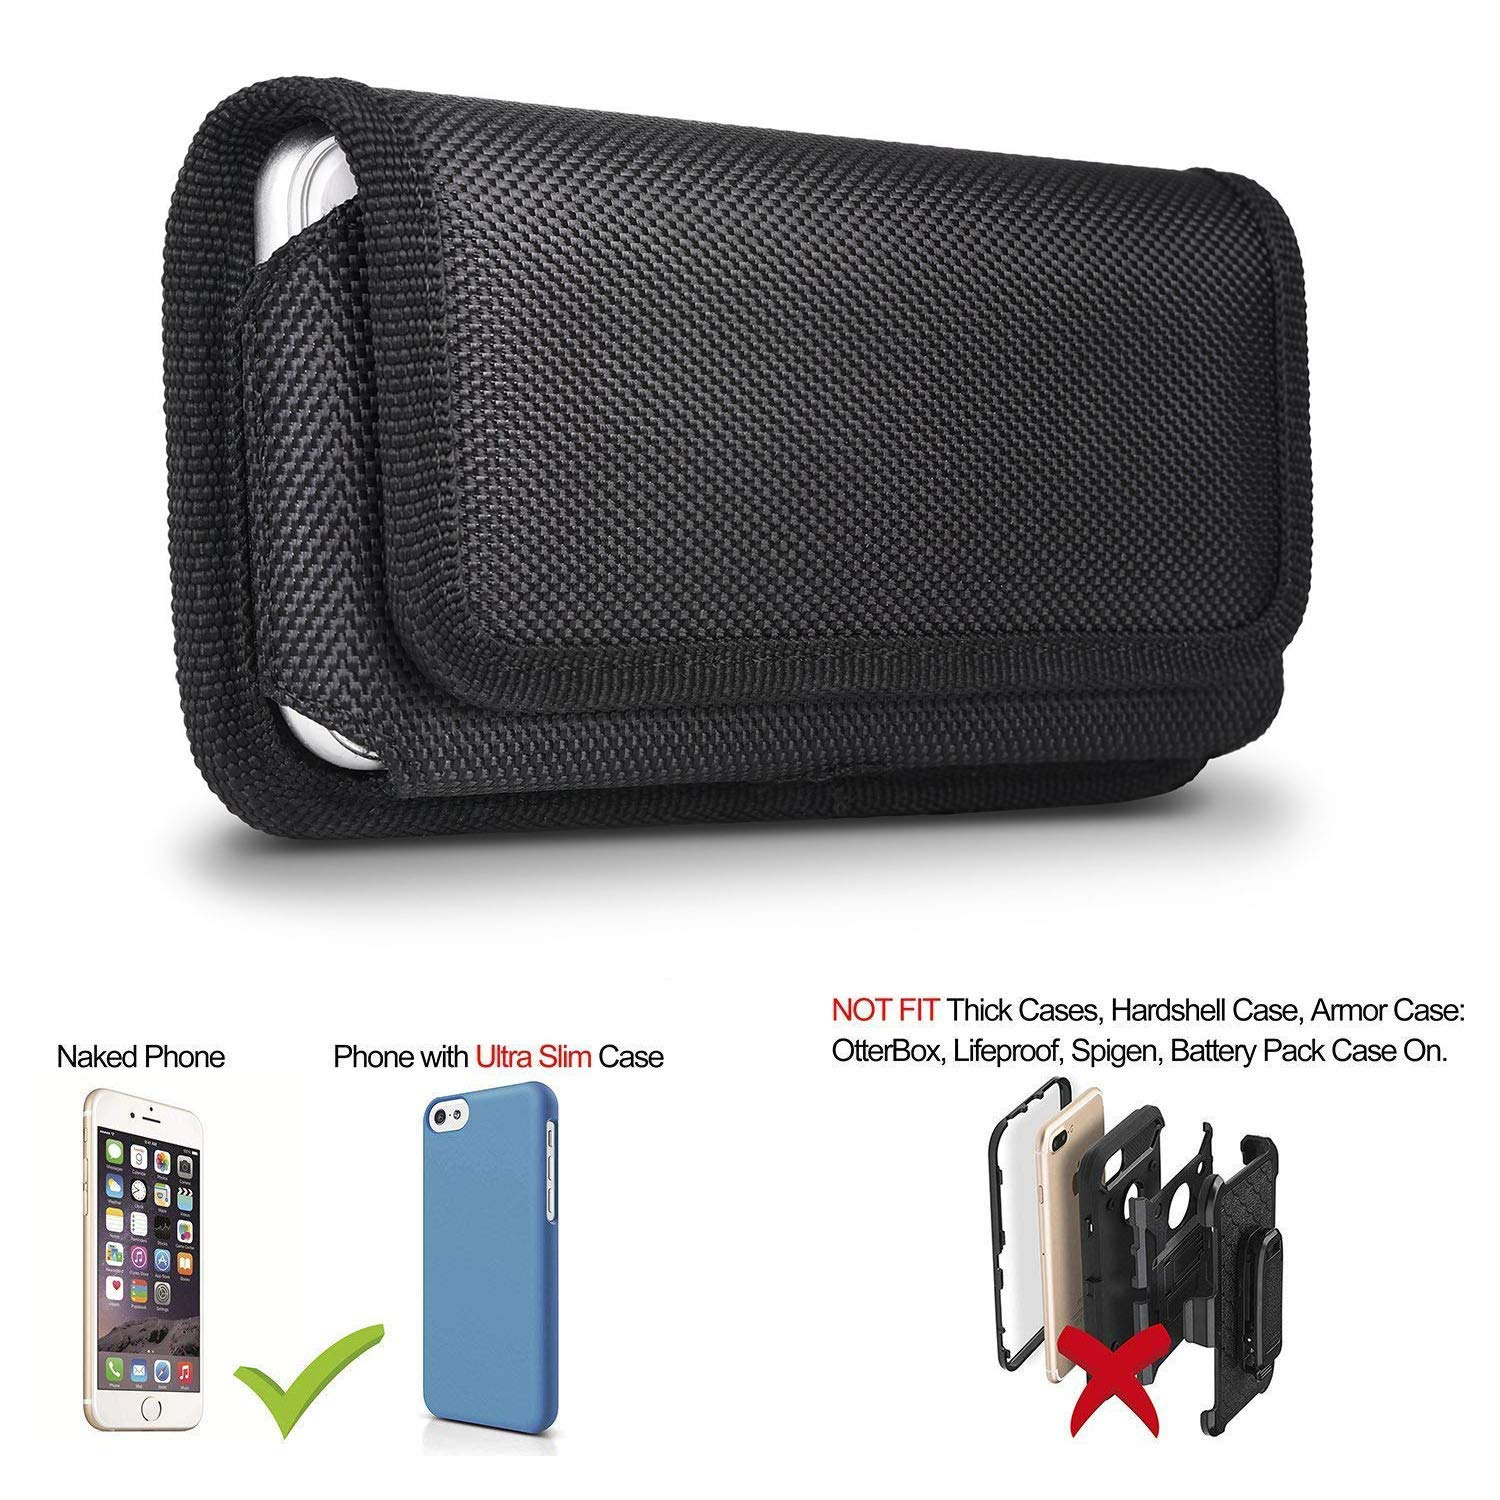 pretty nice 15fea 7b1e9 2 Pack Belt Pouch Case for iPhone 8 Plus 7 Plus 6S Plus 6 Plus, miadore  Rugged Nylon Horizontal Phone Holster and Vertical Phone Holder with Belt  Clip ...